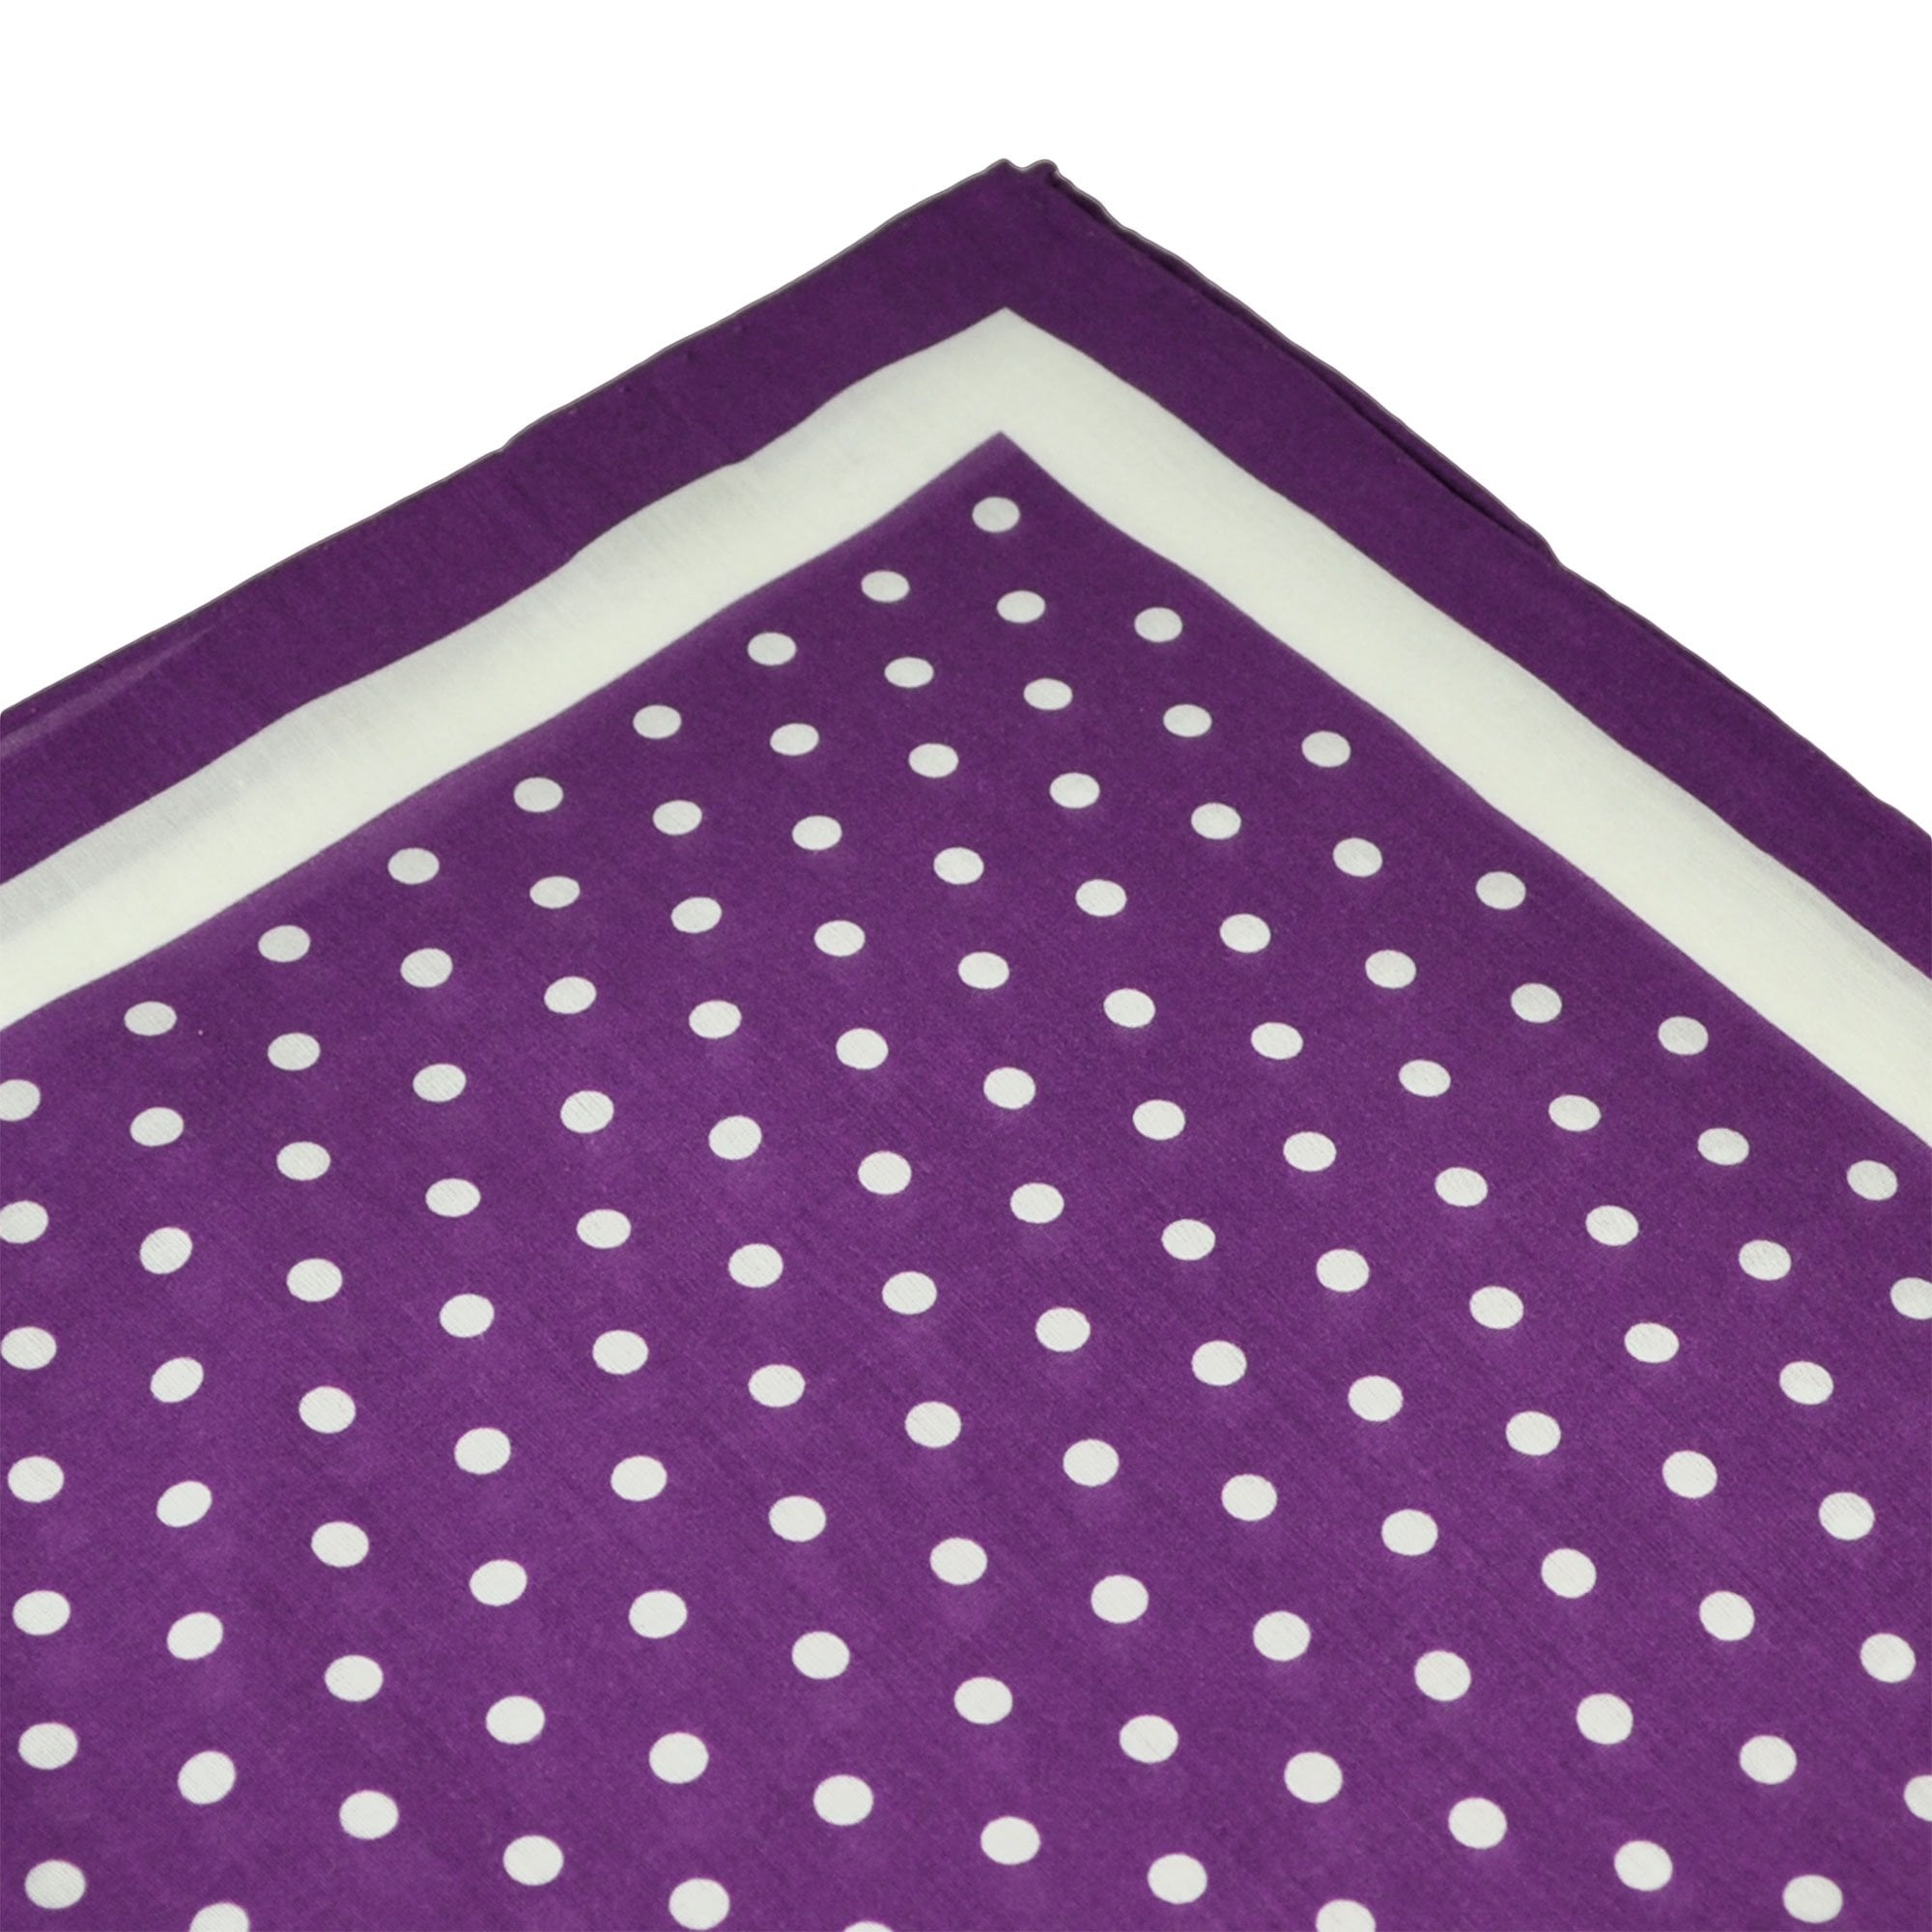 Hankie Pocket Square Handkerchief Purple with Mauve Spot